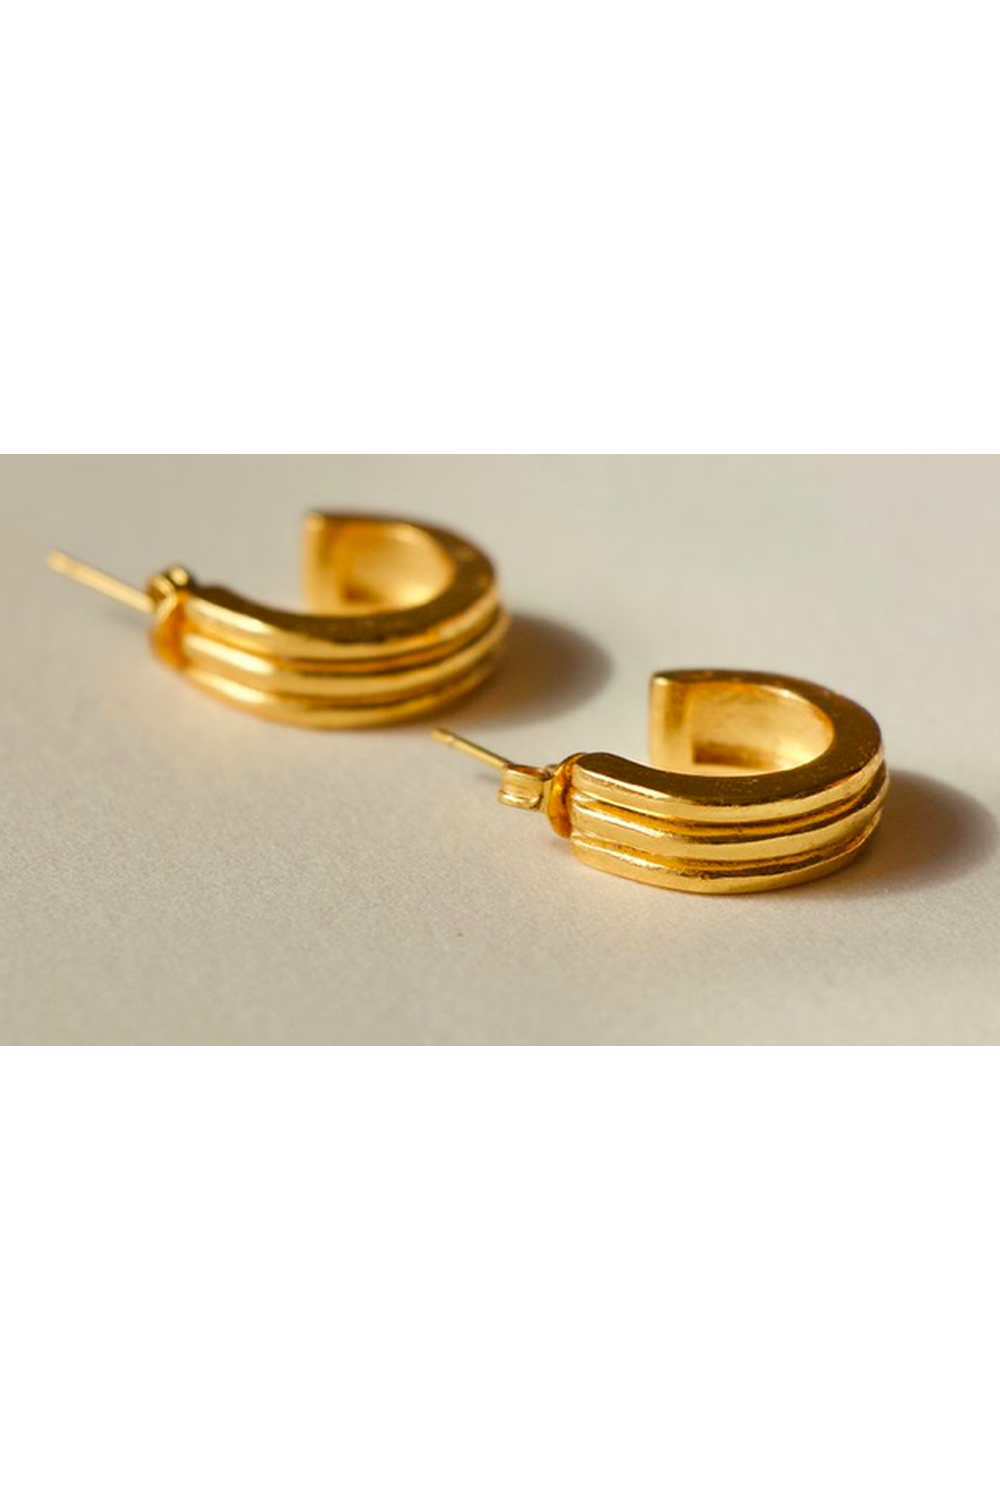 Large Ranura Earrings / Gold | Brie Leon | Mad About The Boy